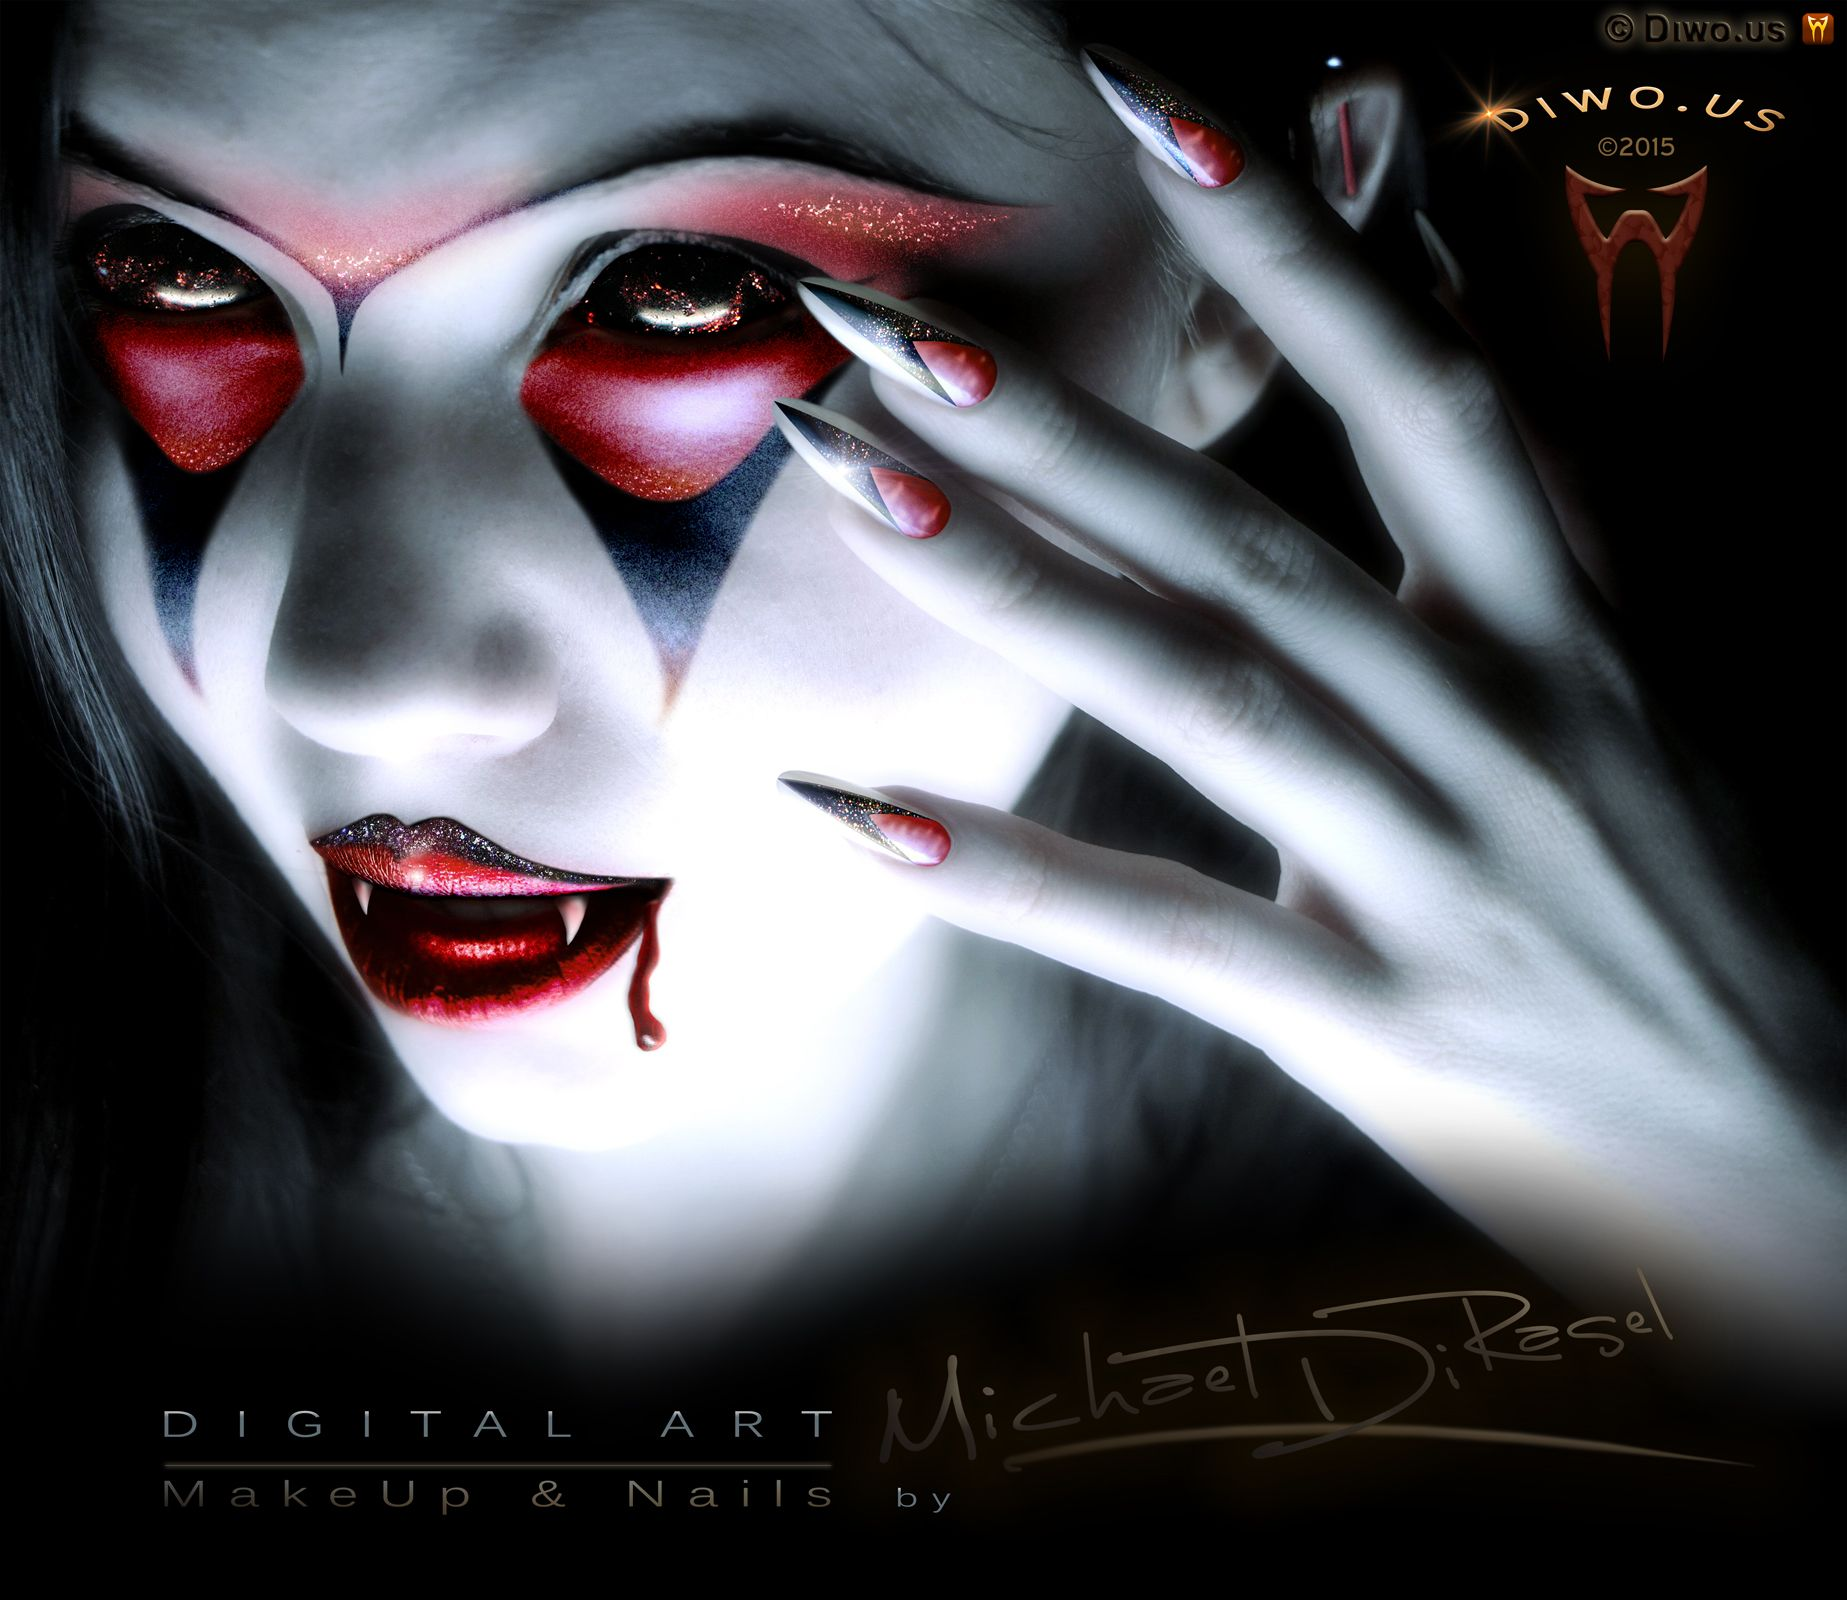 Diwous - Digital Art - Vampire Girl (Digital MakeUp and Nails), beauty, digitální grafika, makeup, nehty, diwoart, diwousart, fantasy, glamour, Halloween, horror, kresba, malba, photomanipulation, počítačová grafika, portrait, Virtual